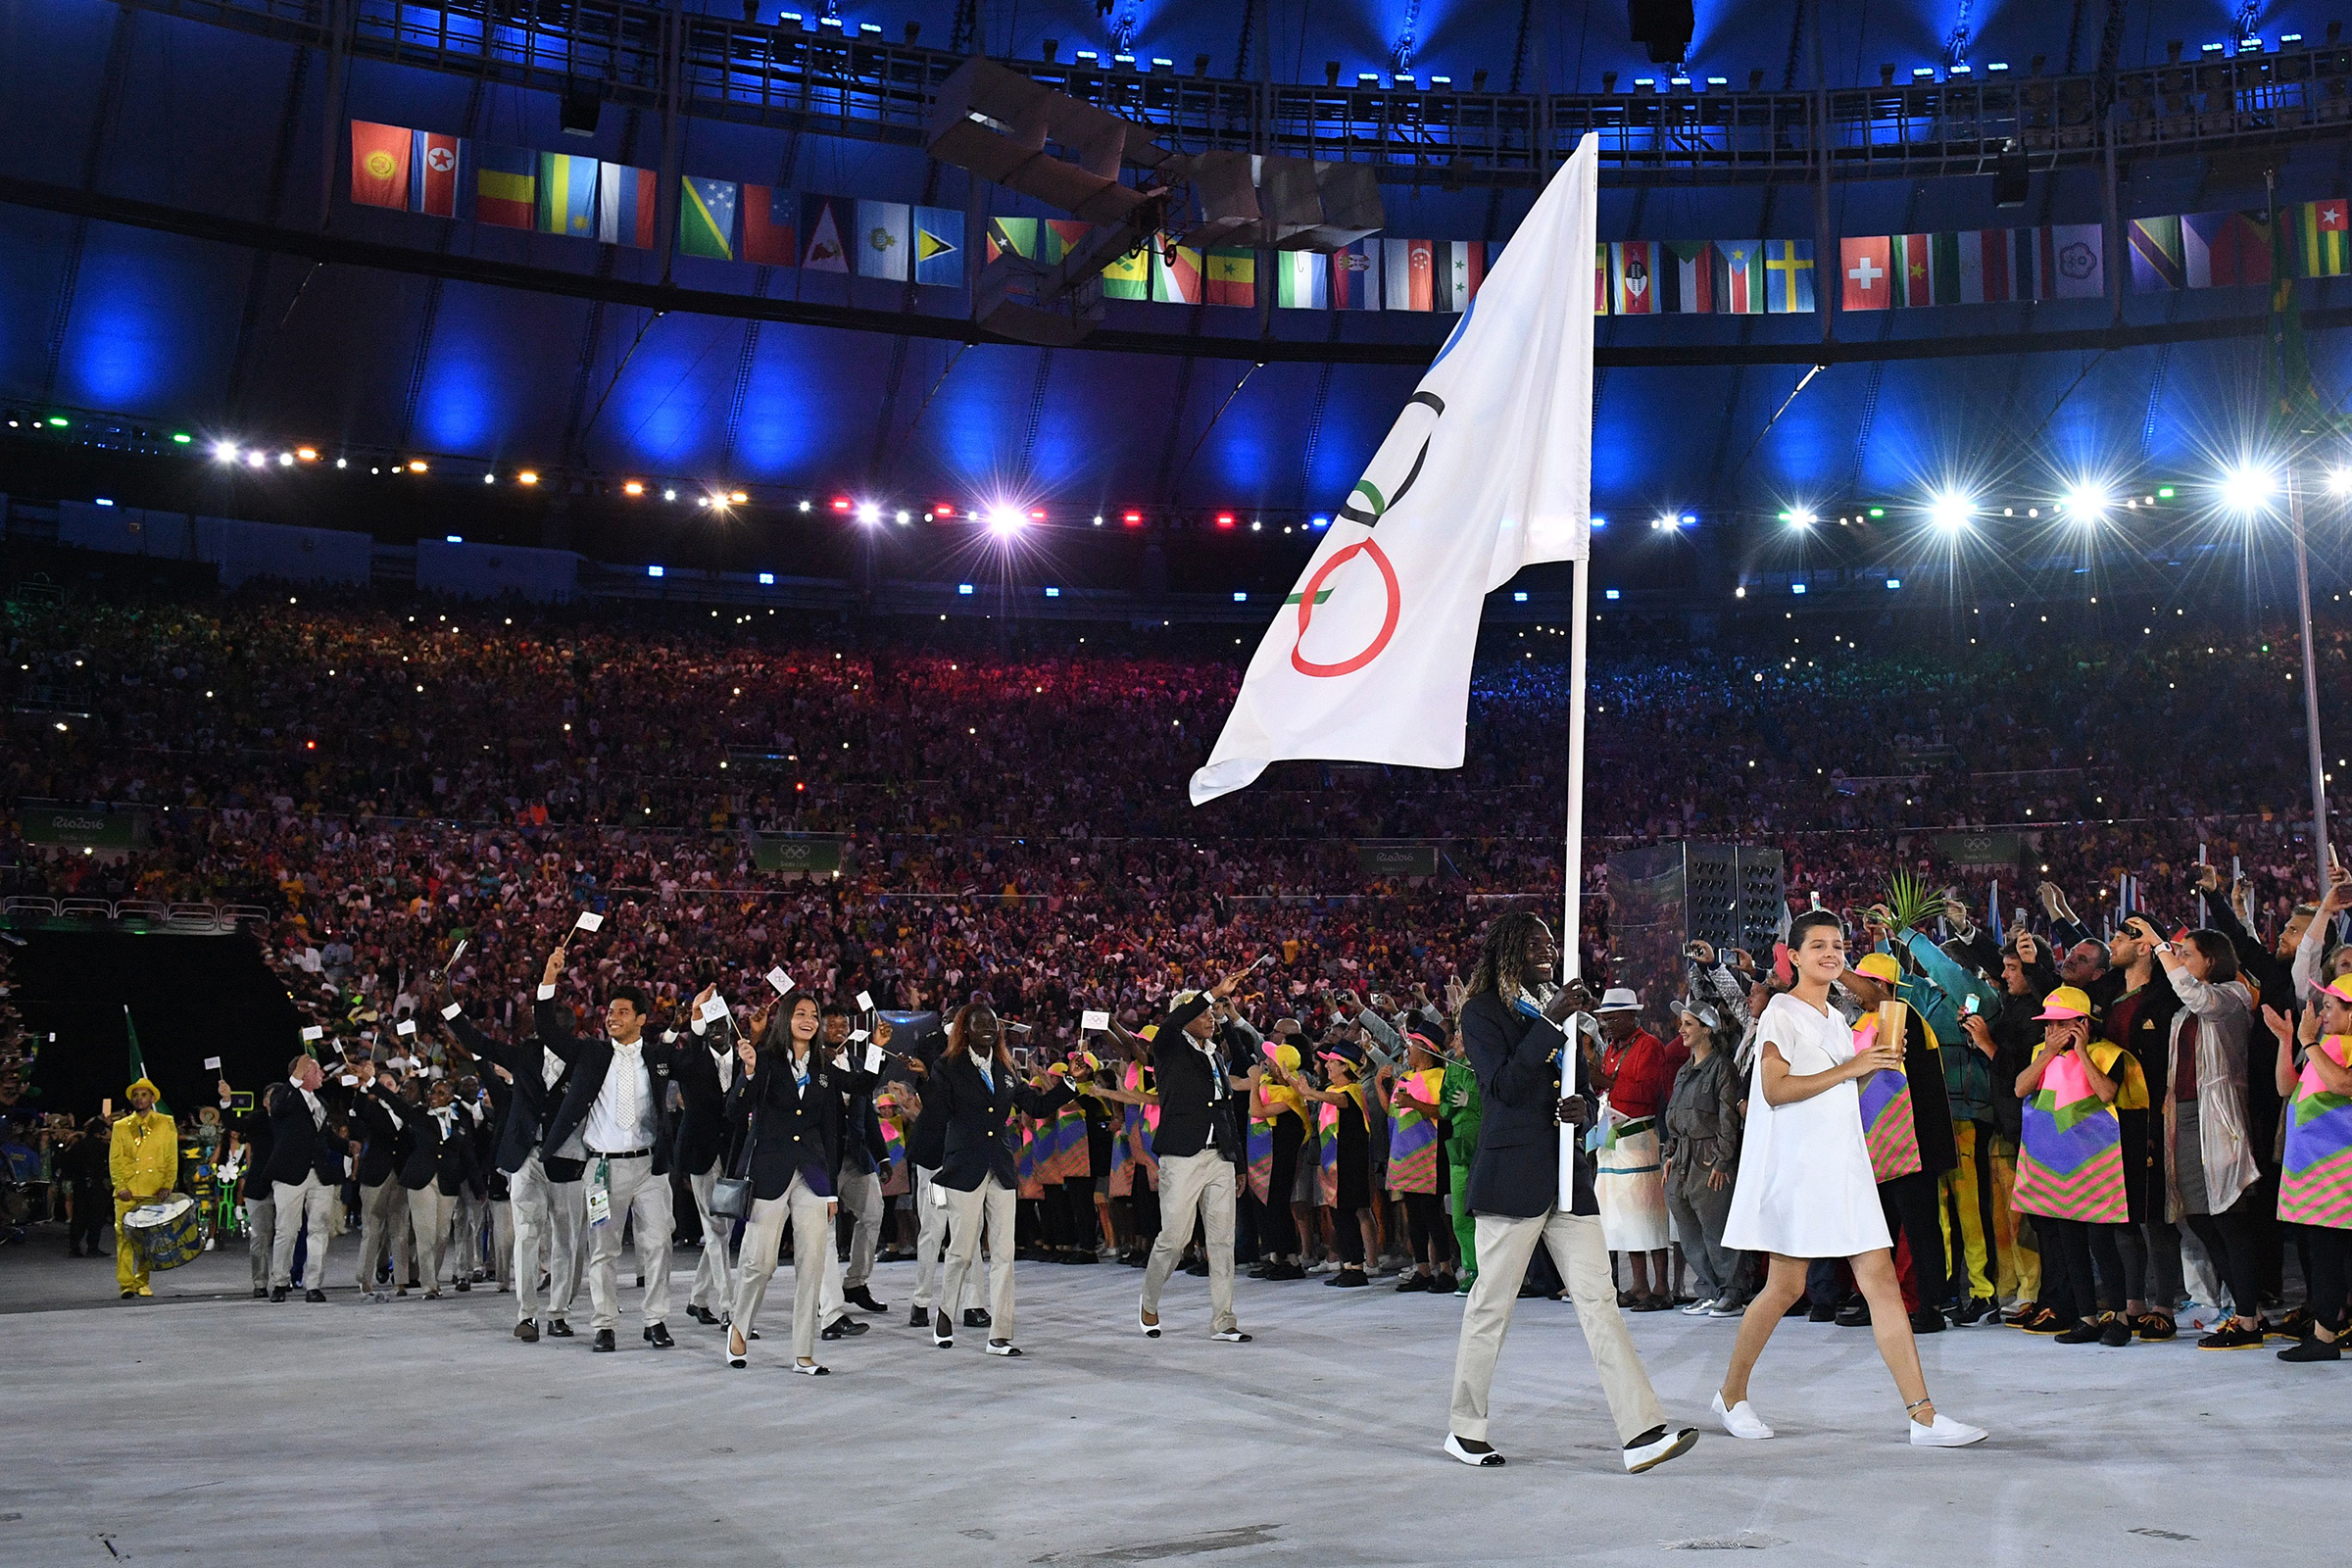 Rose Nathike Lokonyen carries the Olympic flag during the opening ceremony of the Rio 2016 Olympic Games.